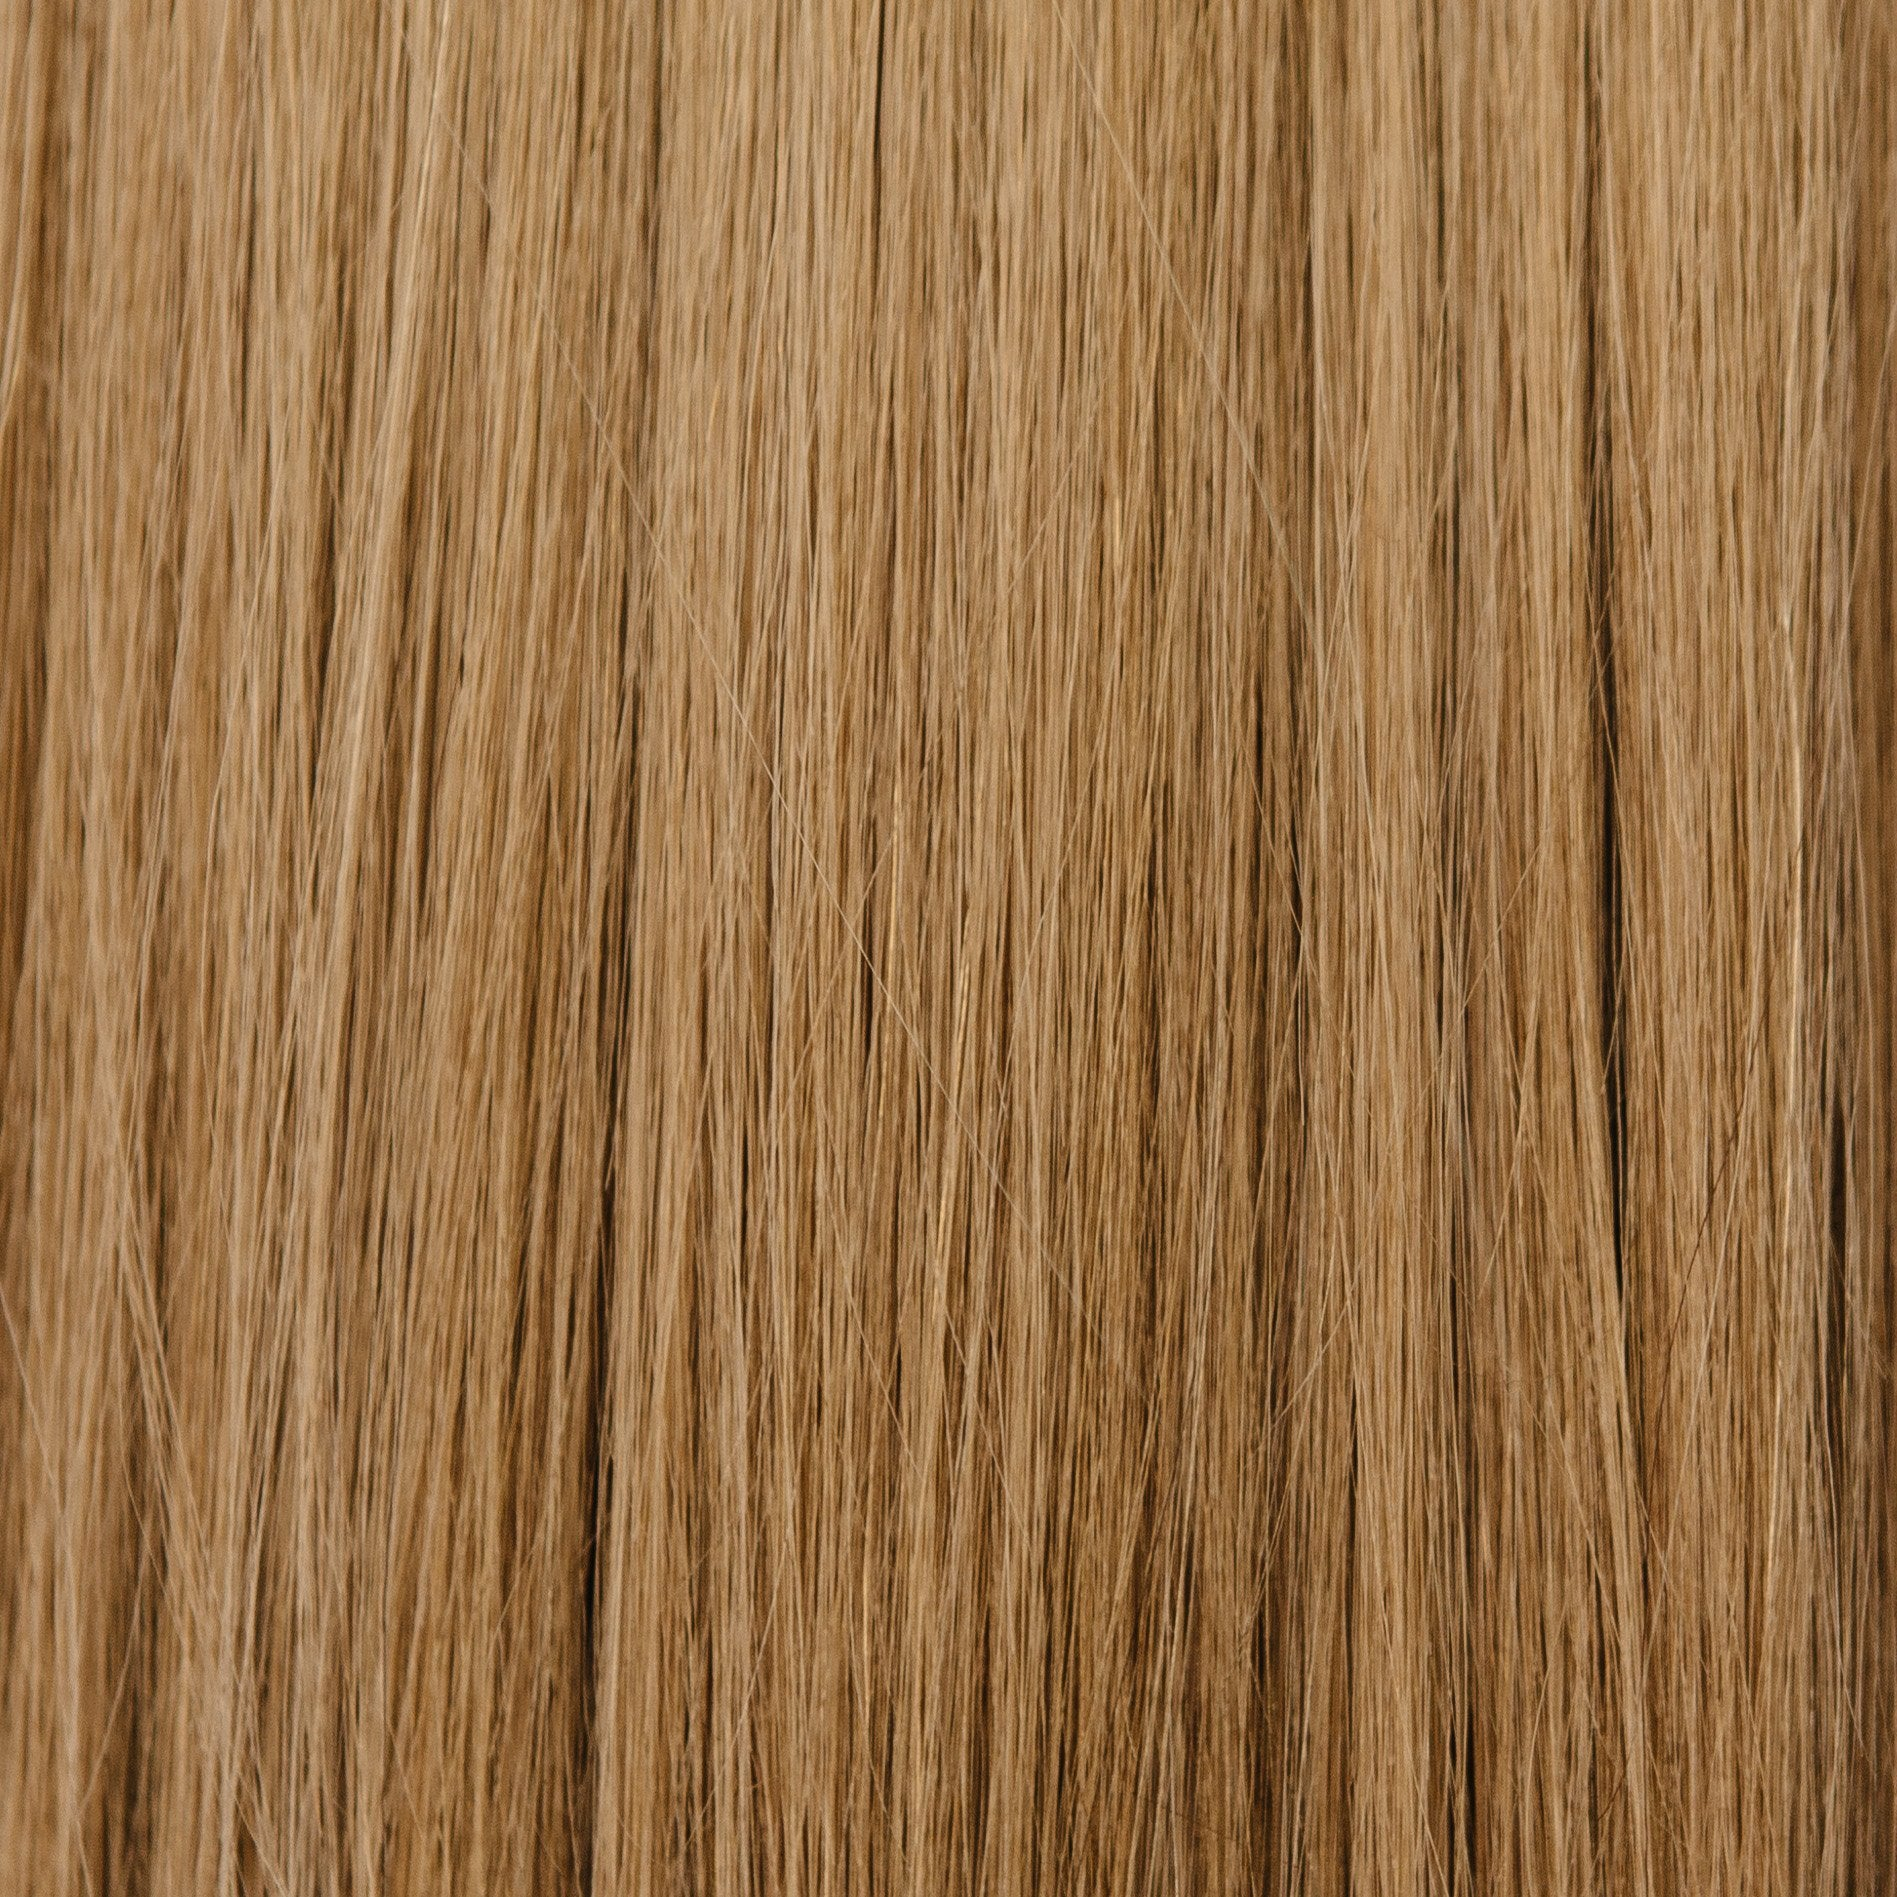 Laced Hair Machine Sewn Weft Extensions #14